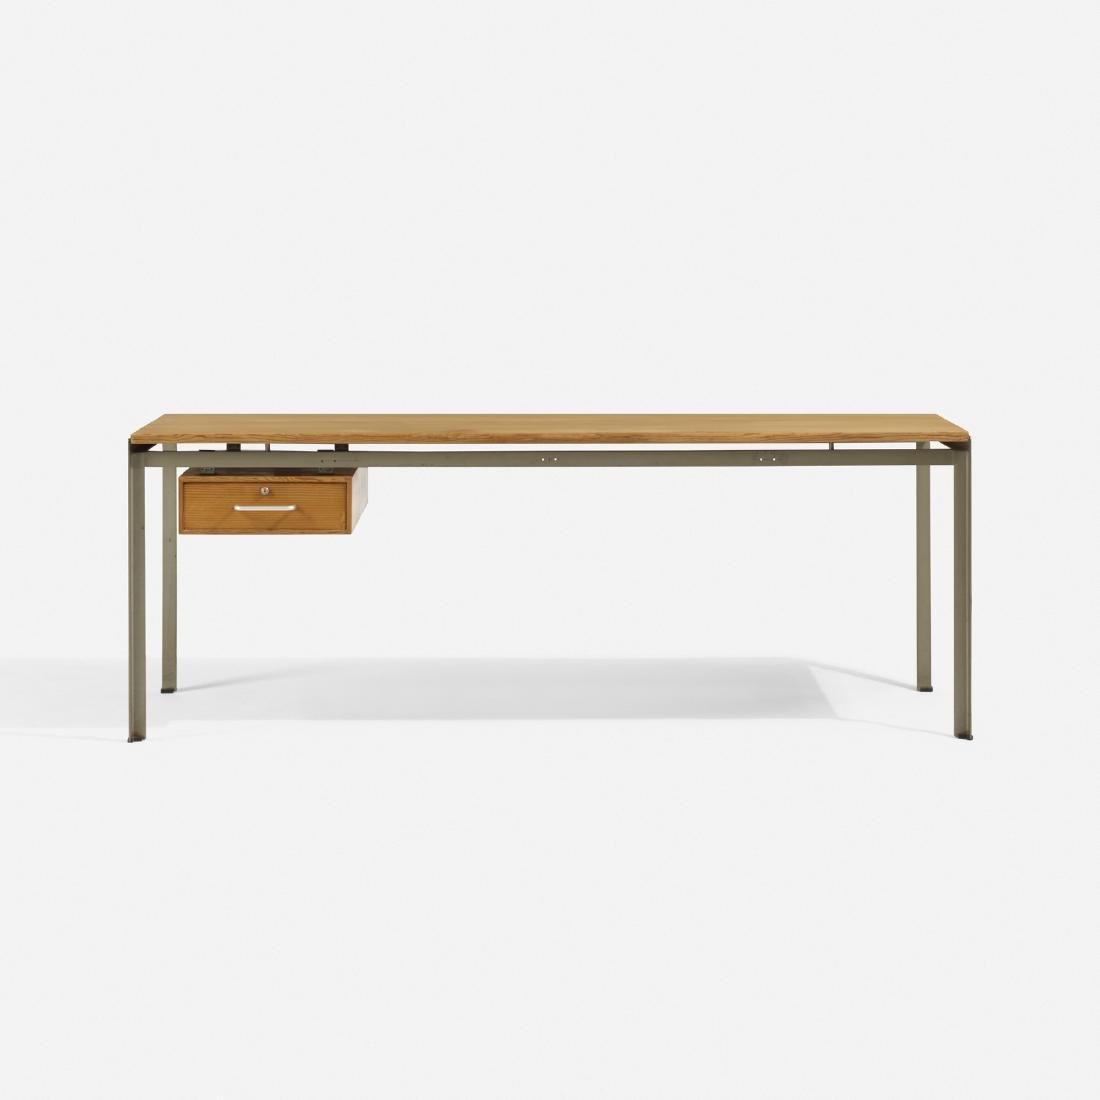 Poul Kjaerholm, Academy desk, School of Architecture